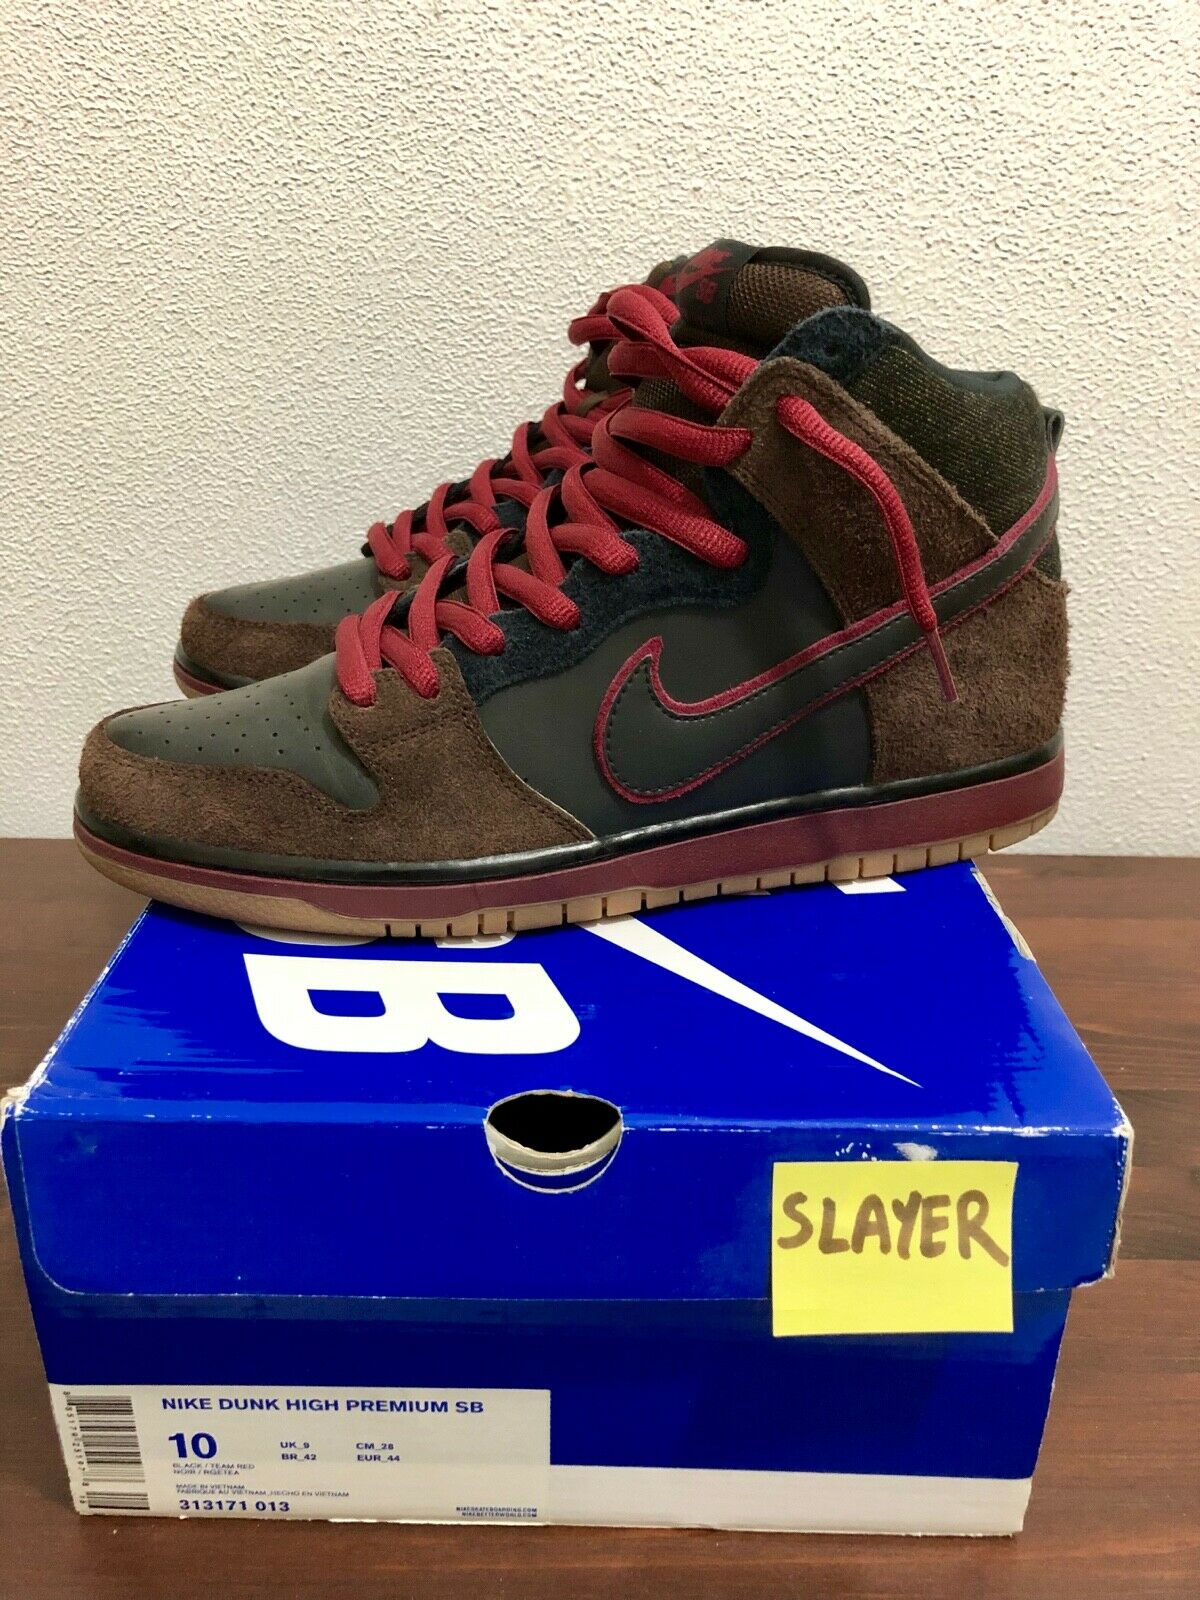 Nike Dunk High SB x Brooklyn Projects Slayer Reign in Blood US 10 313171 013 666